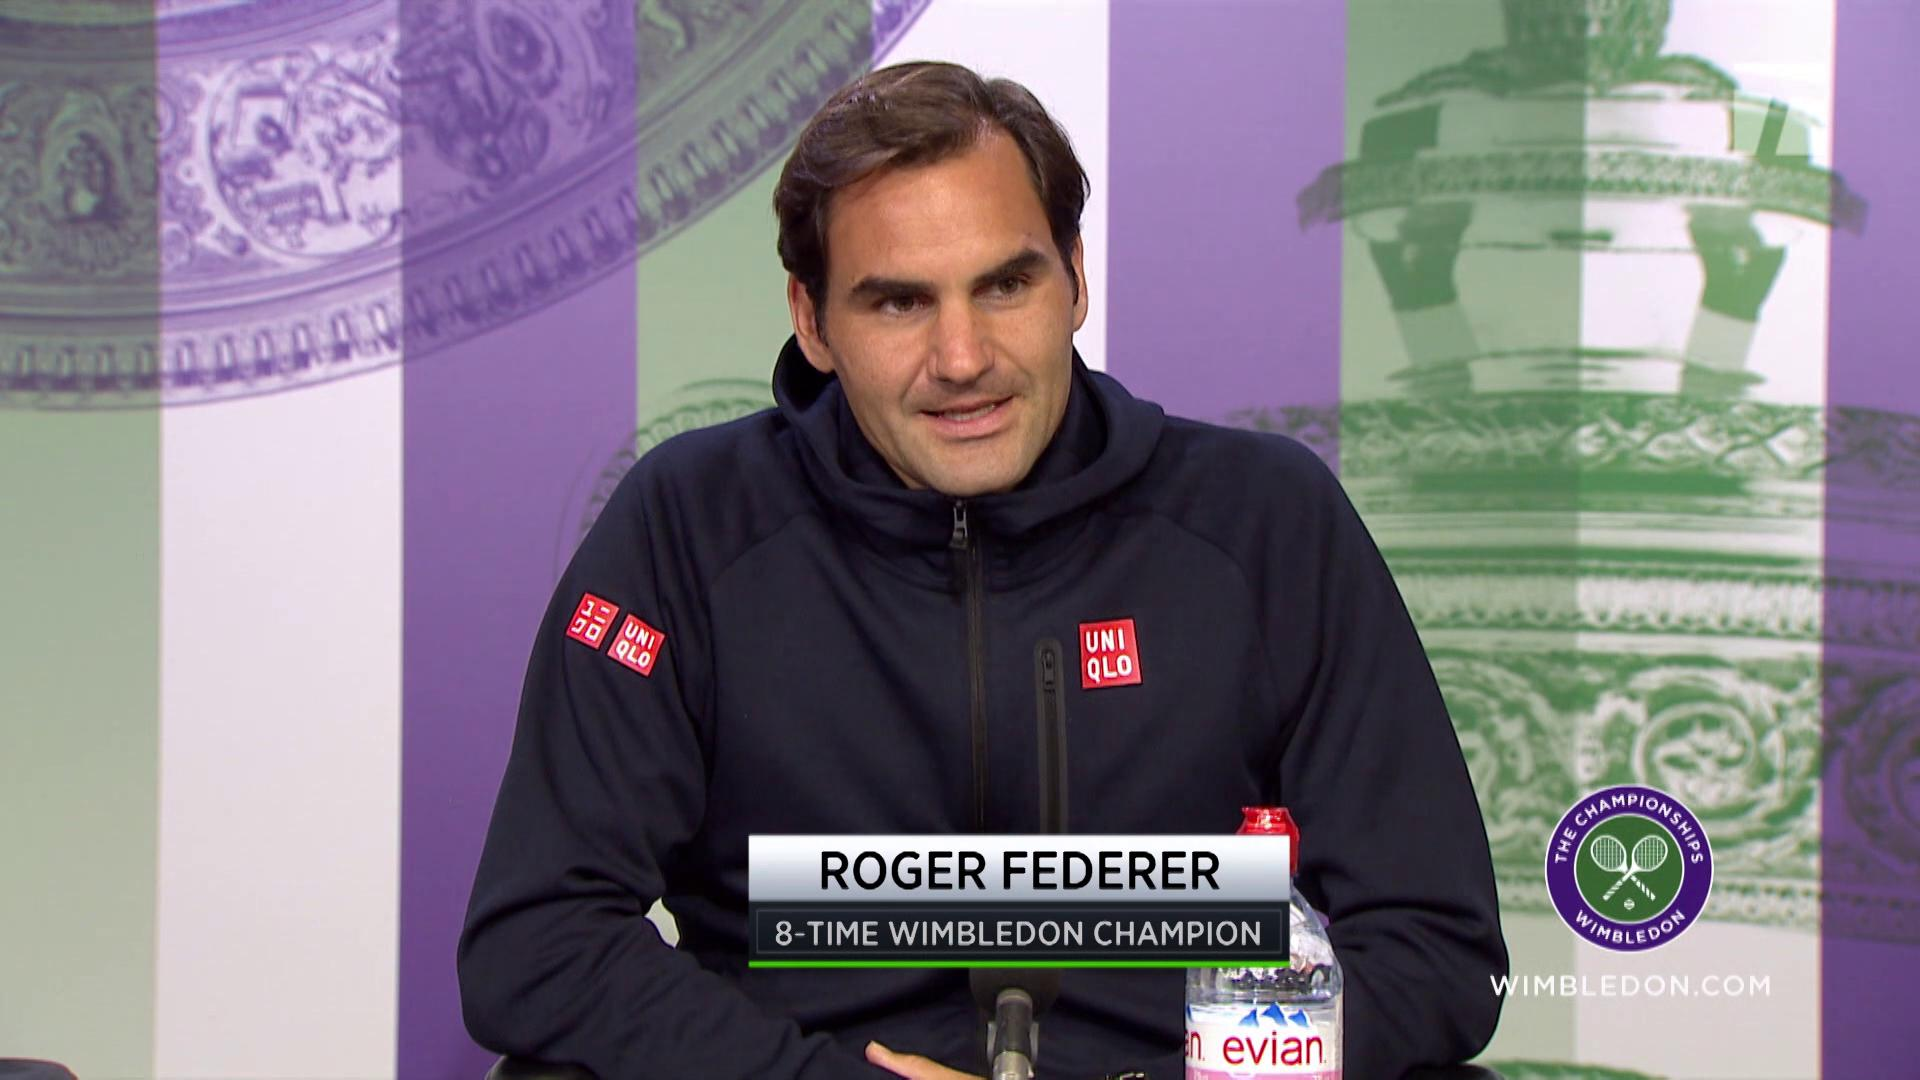 7b3ffc39 The Future of Federer: Why Roger made the switch from Nike to Uniqlo |  TENNIS.com - Live Scores, News, Player Rankings